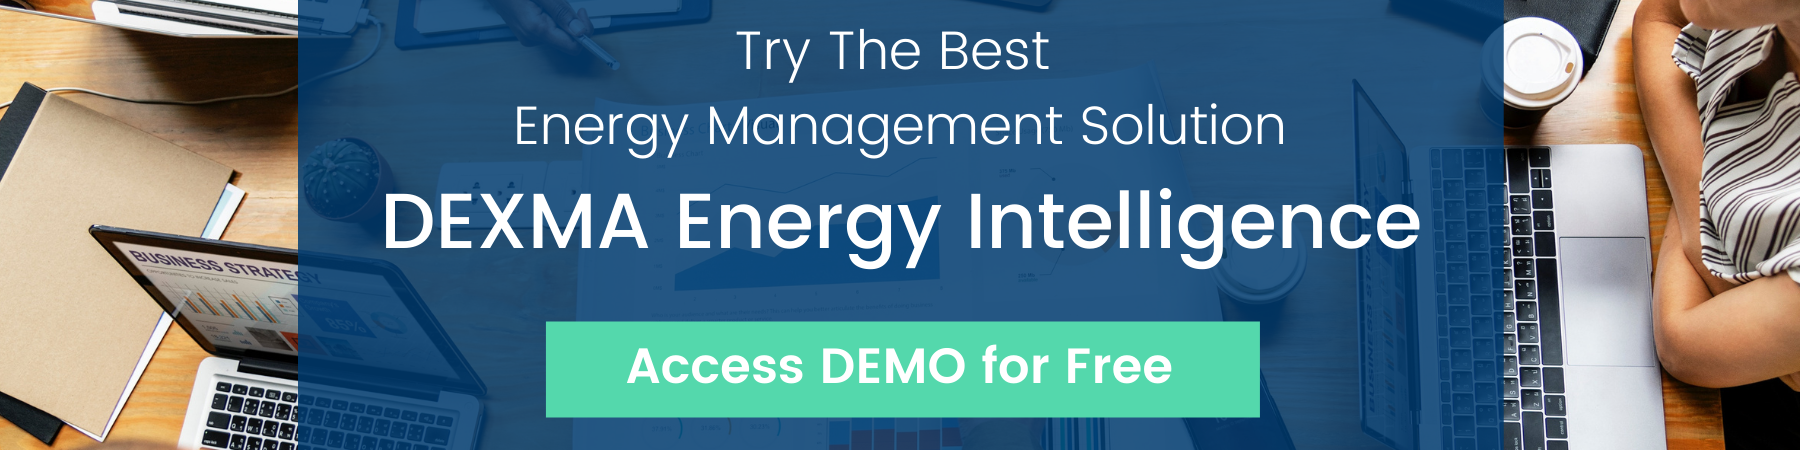 DEXMA Energy Intelligence Demo